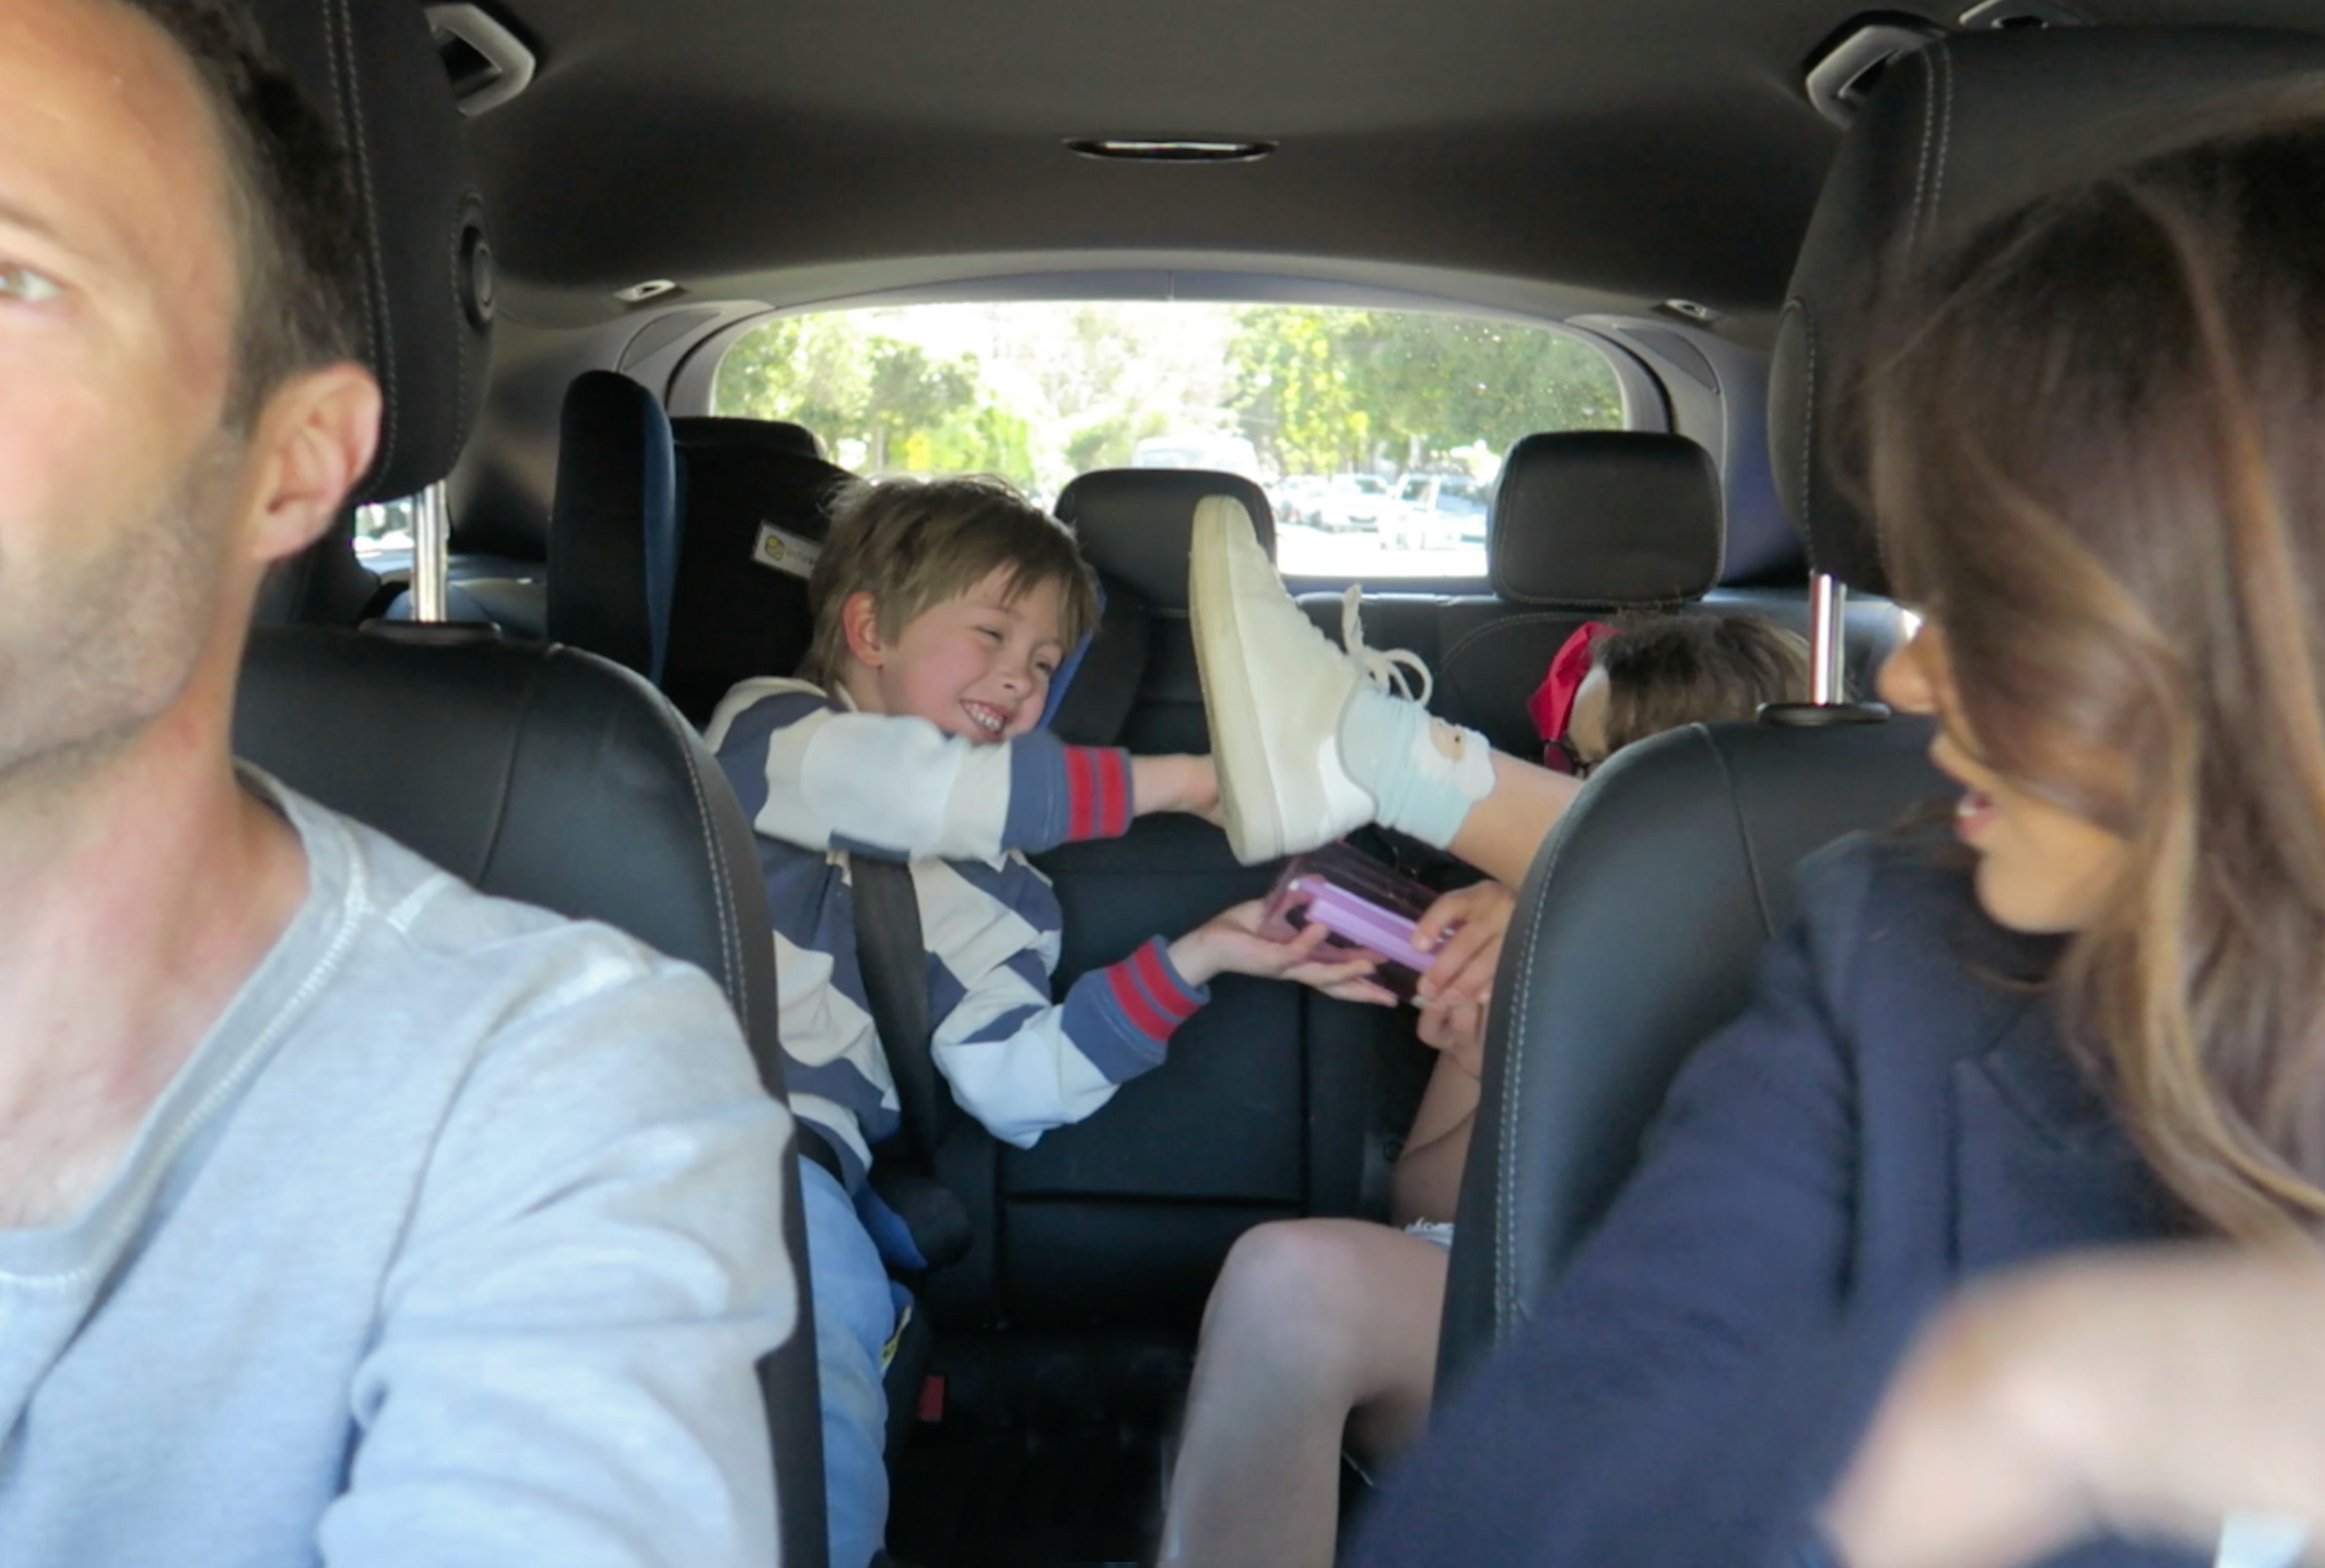 Going Mental Dealing With Kids Fighting in The Car? You Might Want to Know About The Backseat Carma